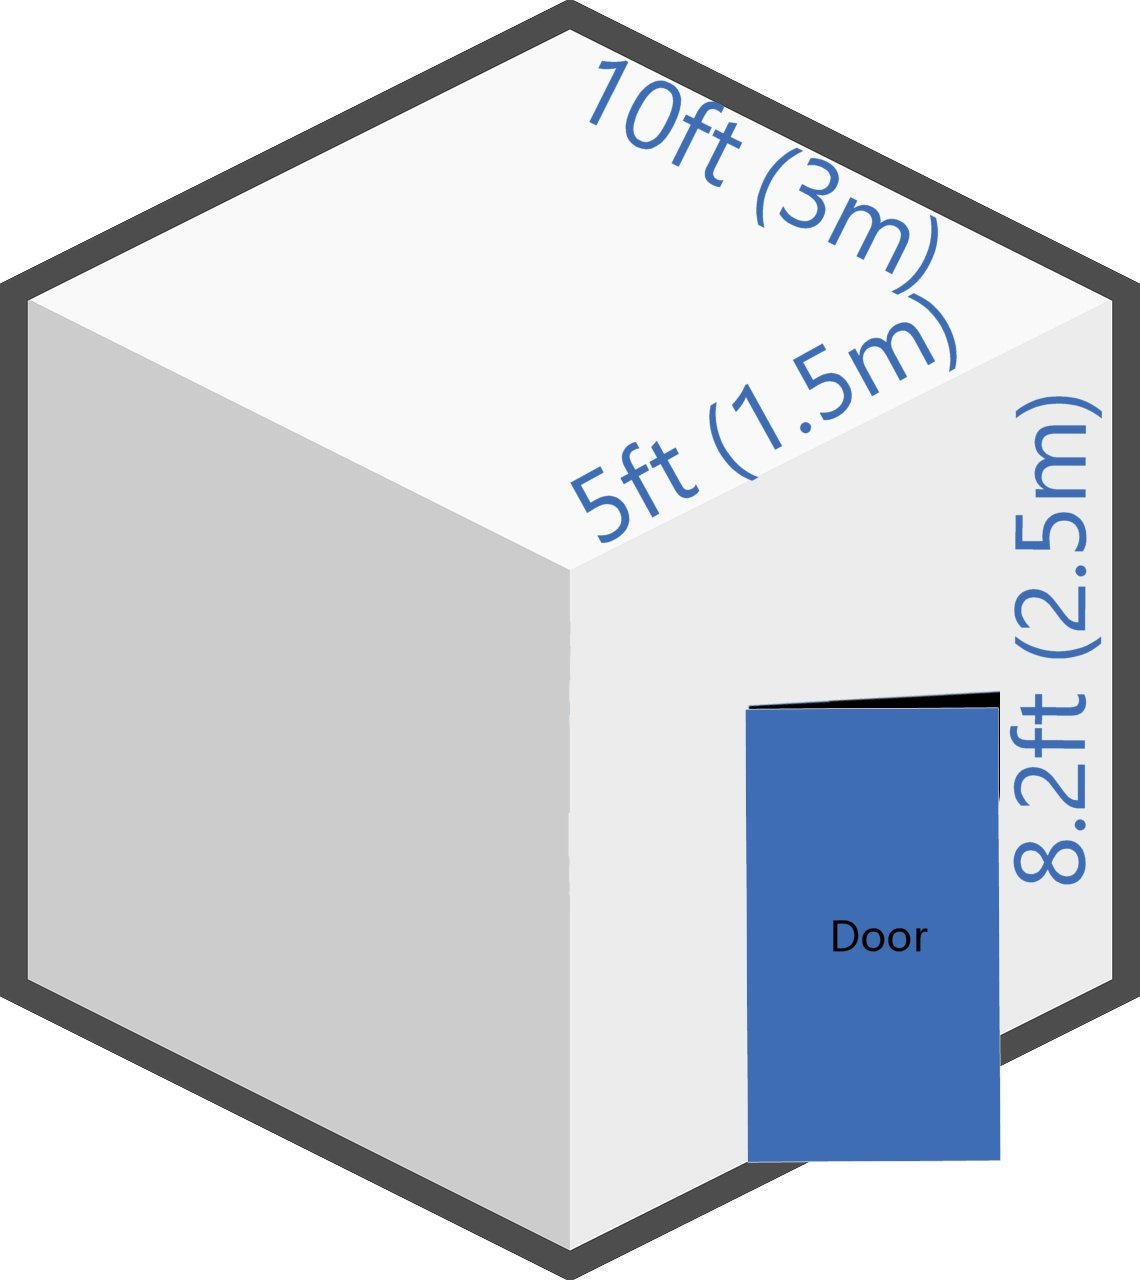 Medium room dimensions